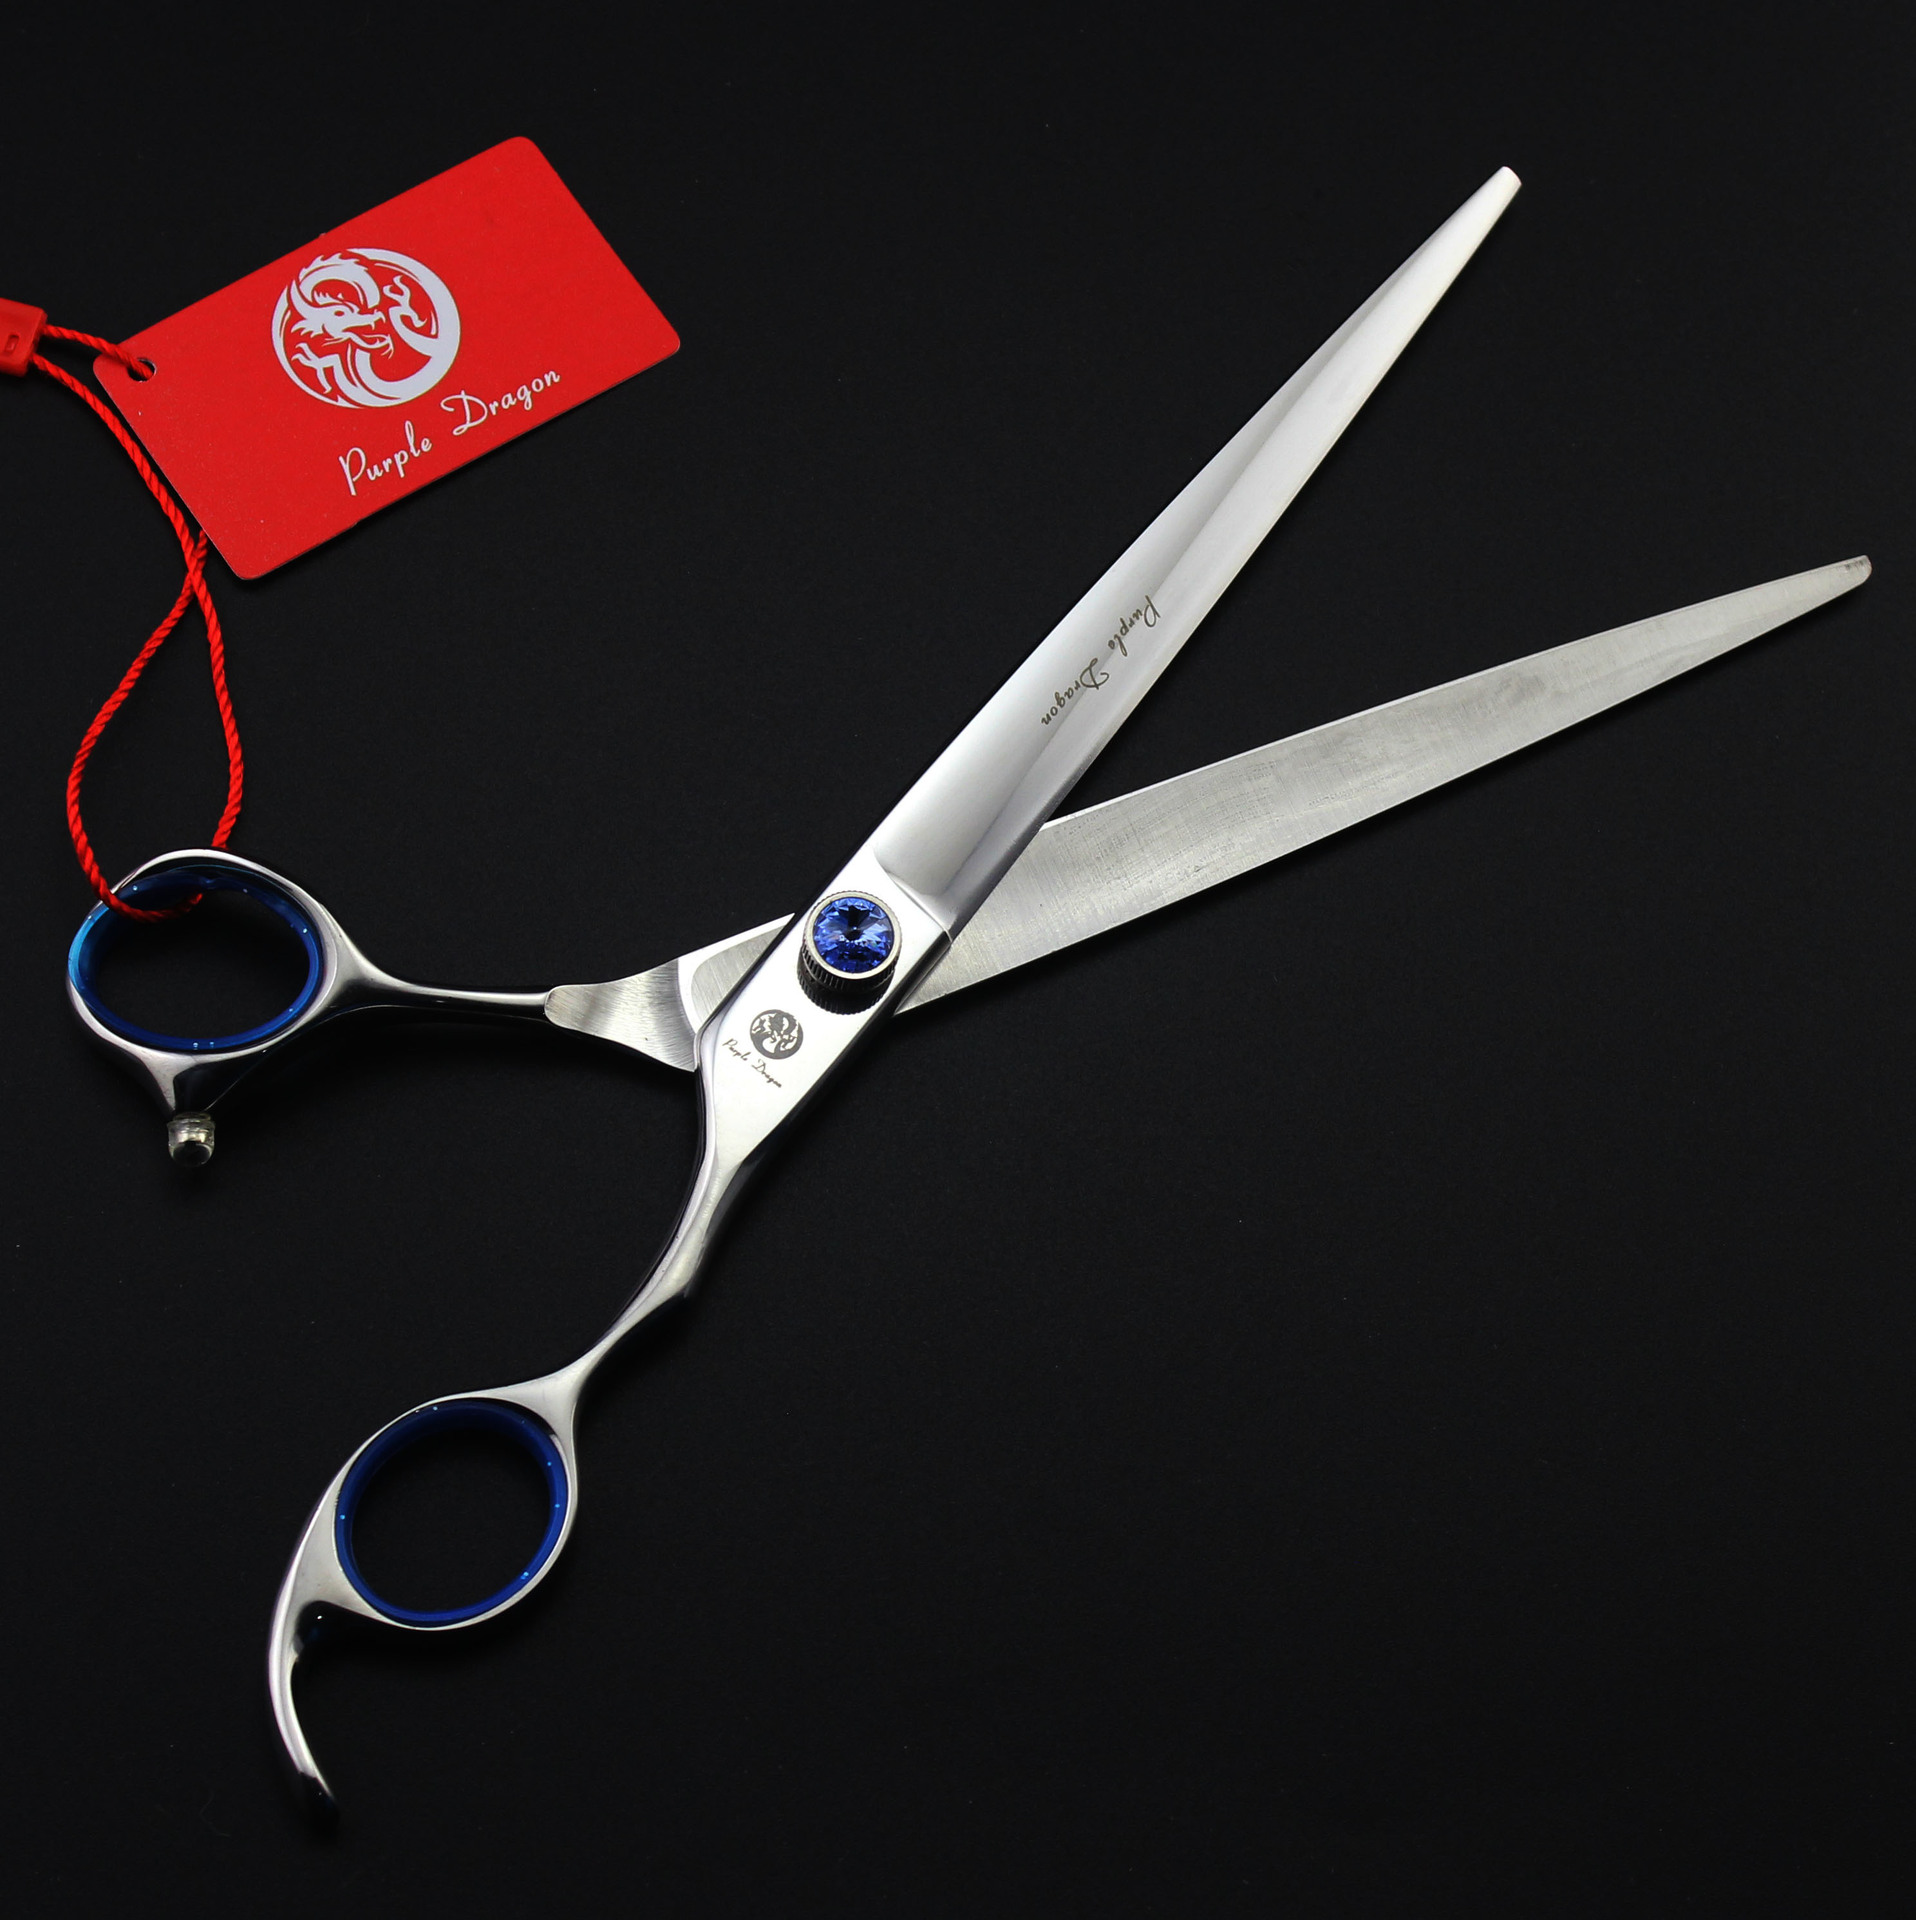 8.0 Inch Japan Professional Dog Cat Tesoura Grooming Cutting Scissors Pets Salon8.0 Inch Japan Professional Dog Cat Tesoura Grooming Cutting Scissors Pets Salon